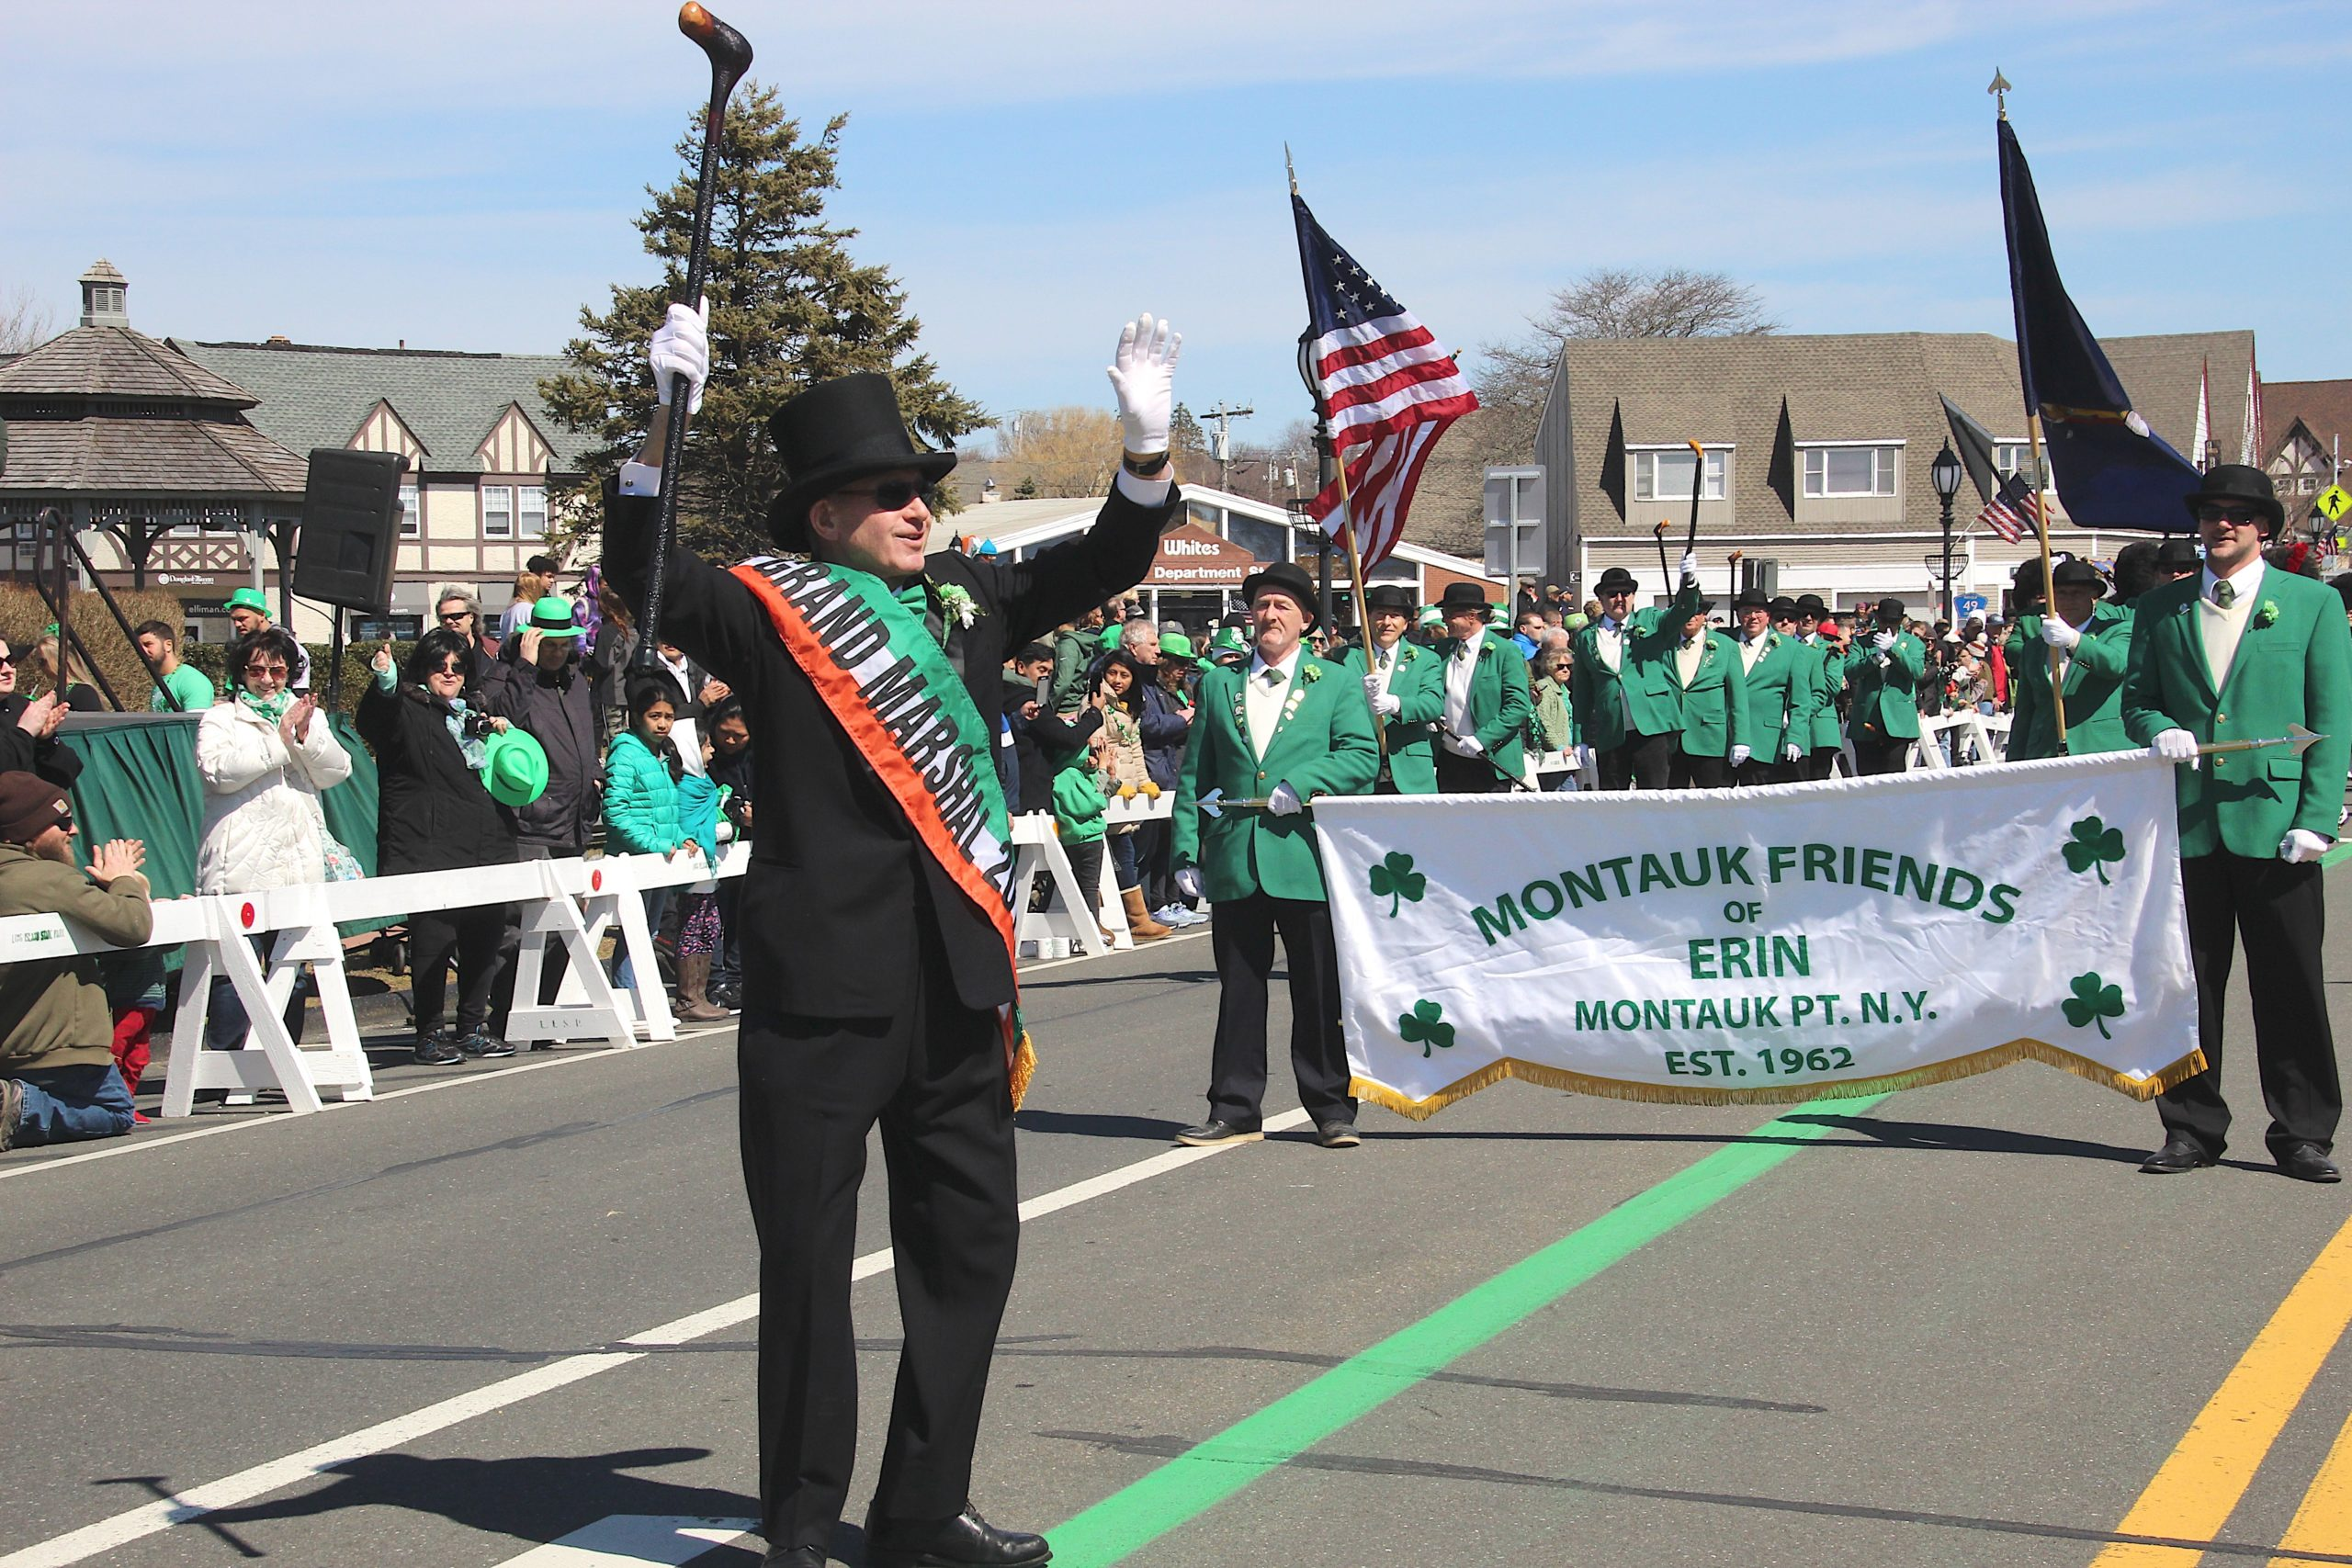 The 2019 Montauk Friends of Erin Parade.  EXPRESS FILE